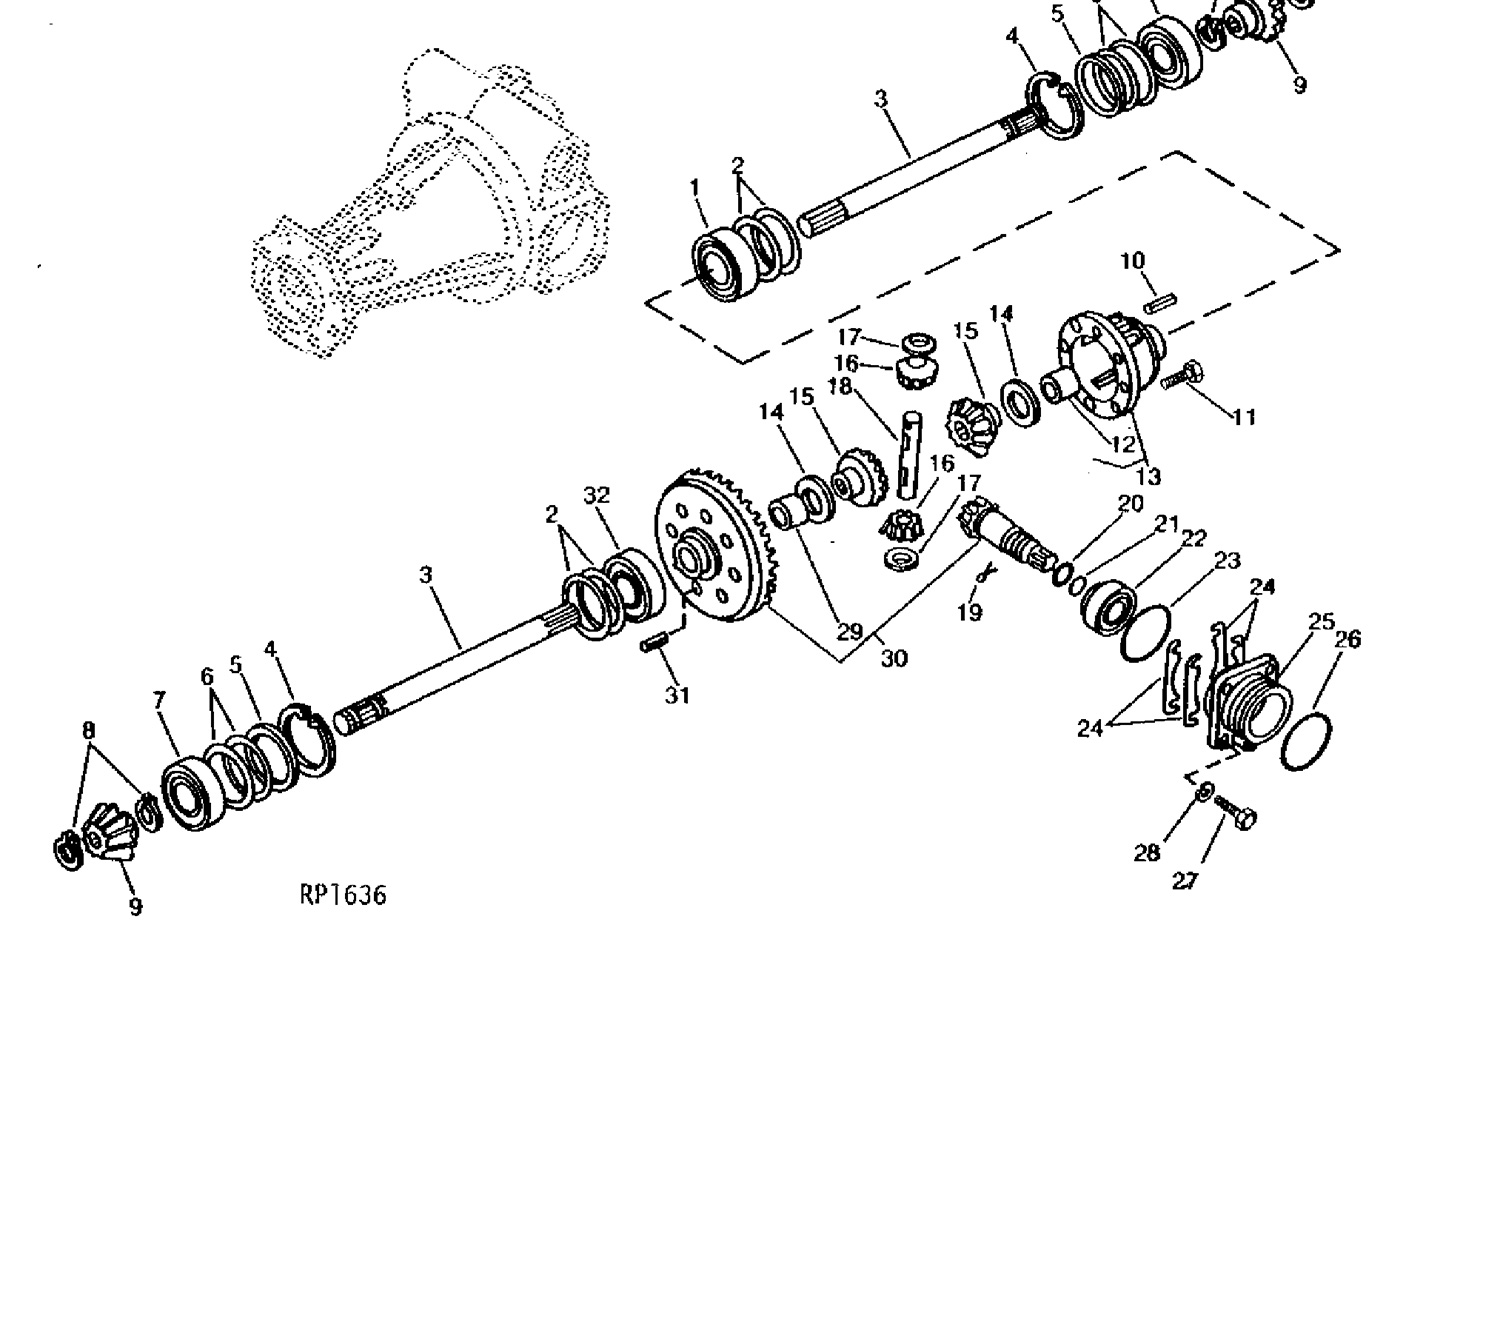 buy your compact tractor parts online \u2022 weaver\u0027s compact John Deere 4310 Front Axle Parts Diagram pulling vs carrying a load